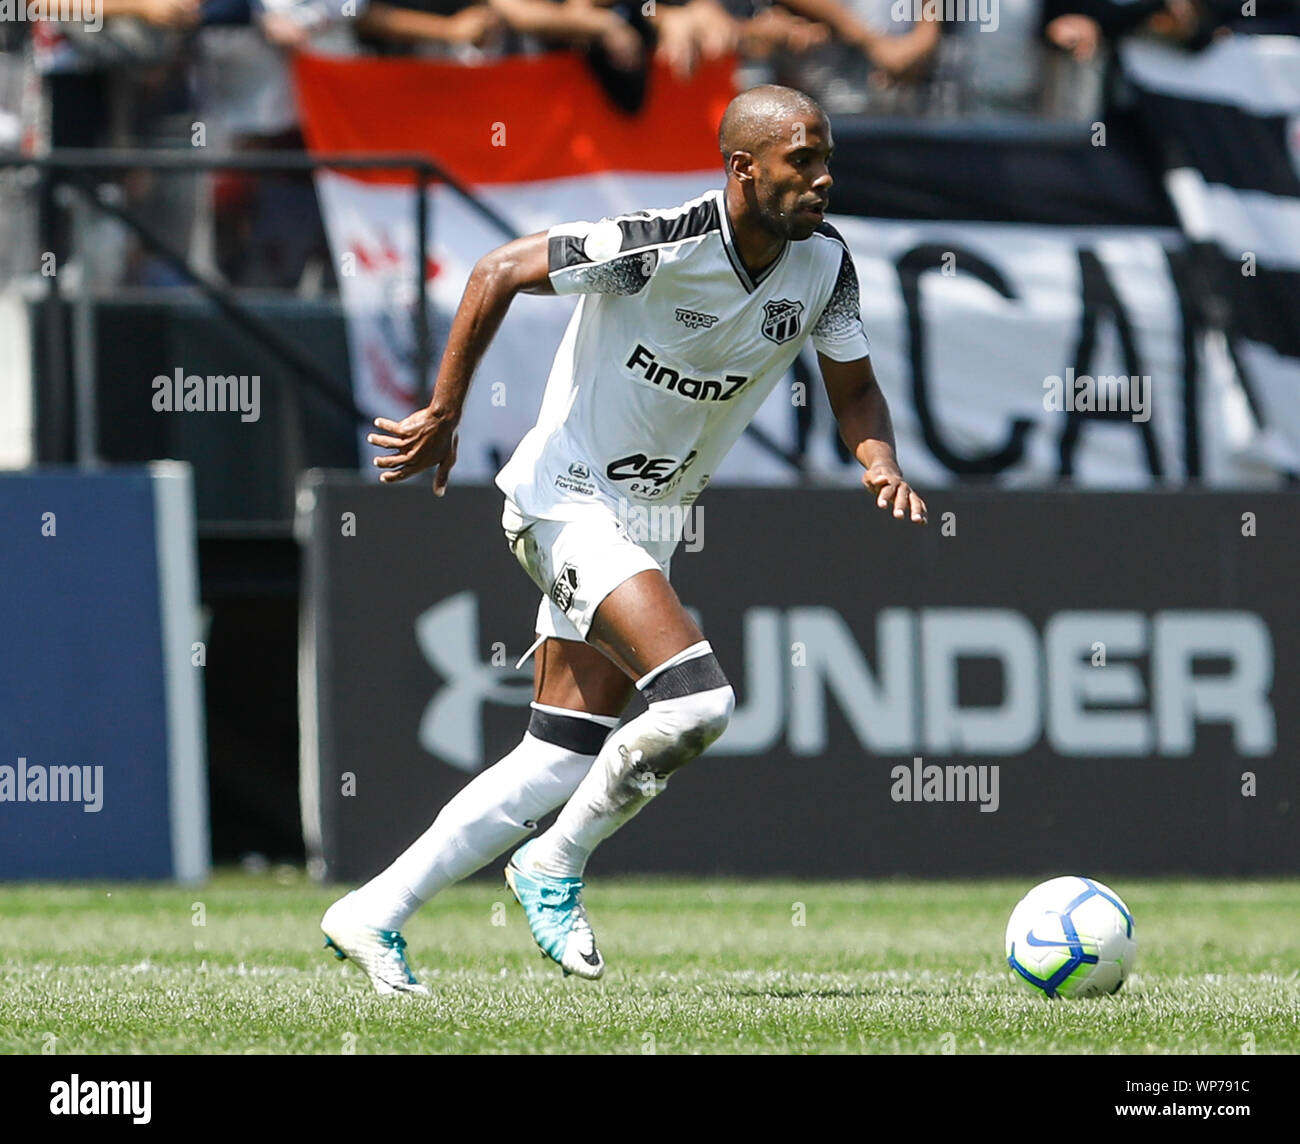 Sao Paulo Sp 07 09 2019 Corinthians X Ceara Fabinho Do Ceara During A Match Between Corinthians X Ceara Held At Corinthians Arena East Zone Of Sao Paulo Sp The Match Is